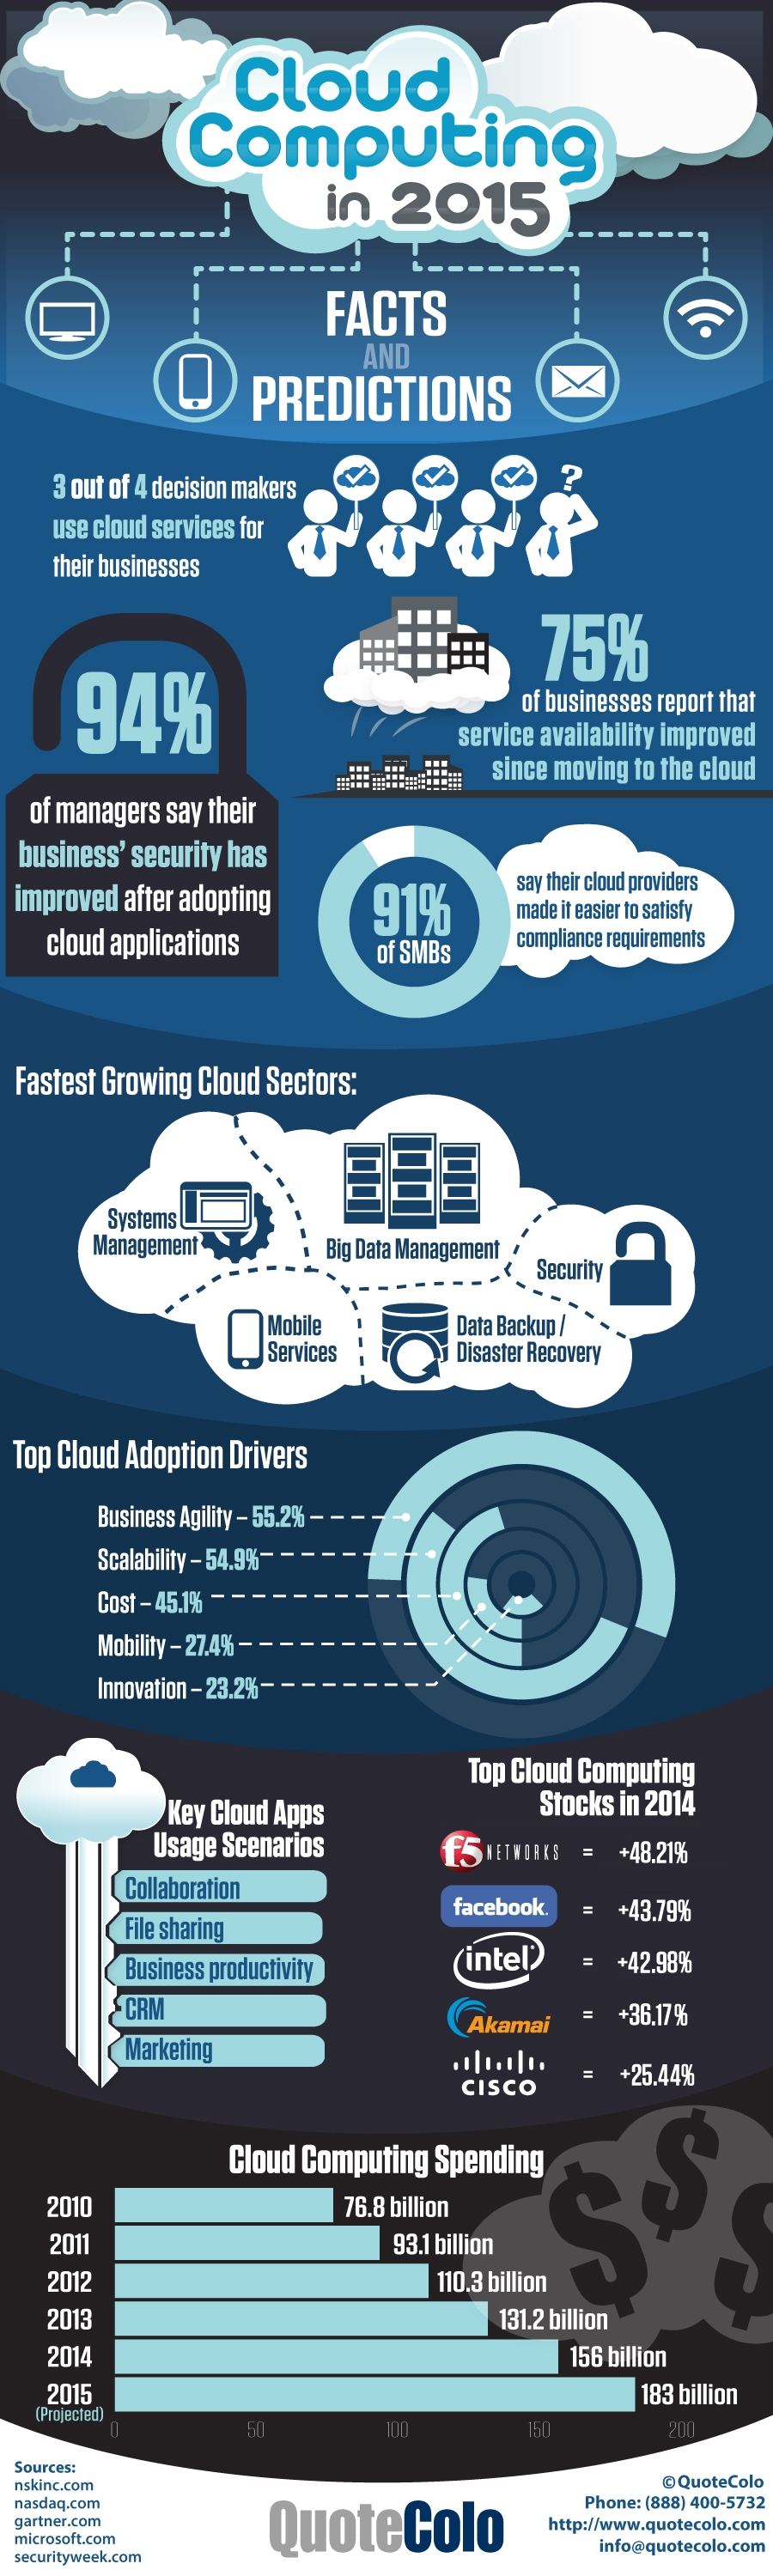 cloud-computing-in-2015